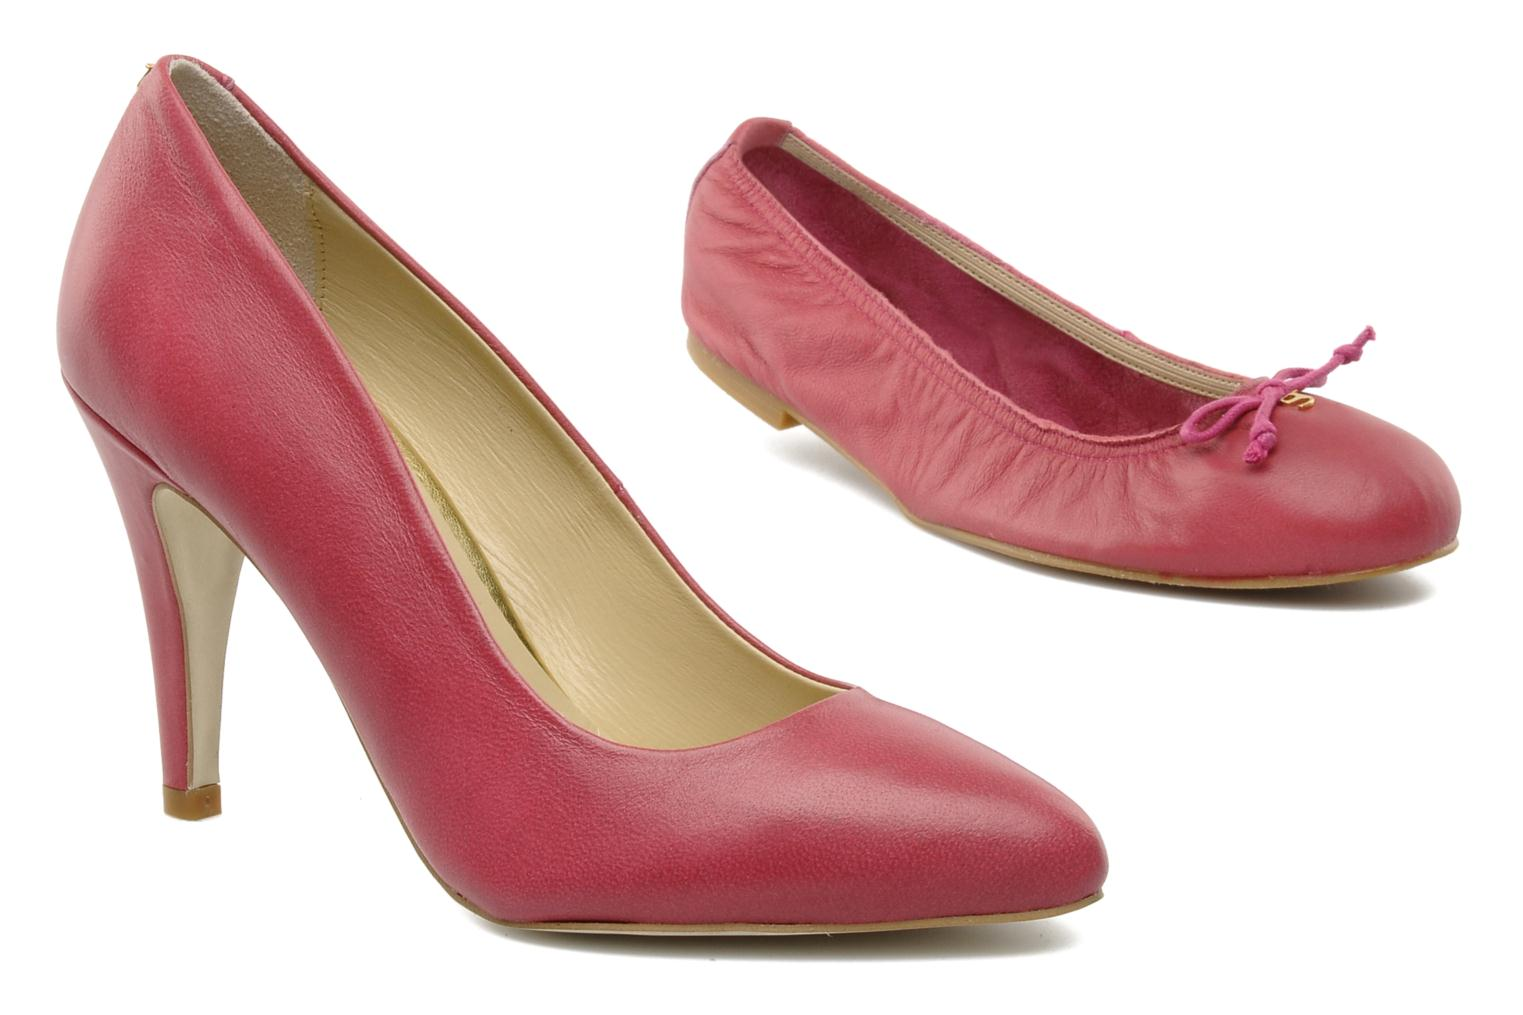 Pump Low Heel Fuchsia Leather